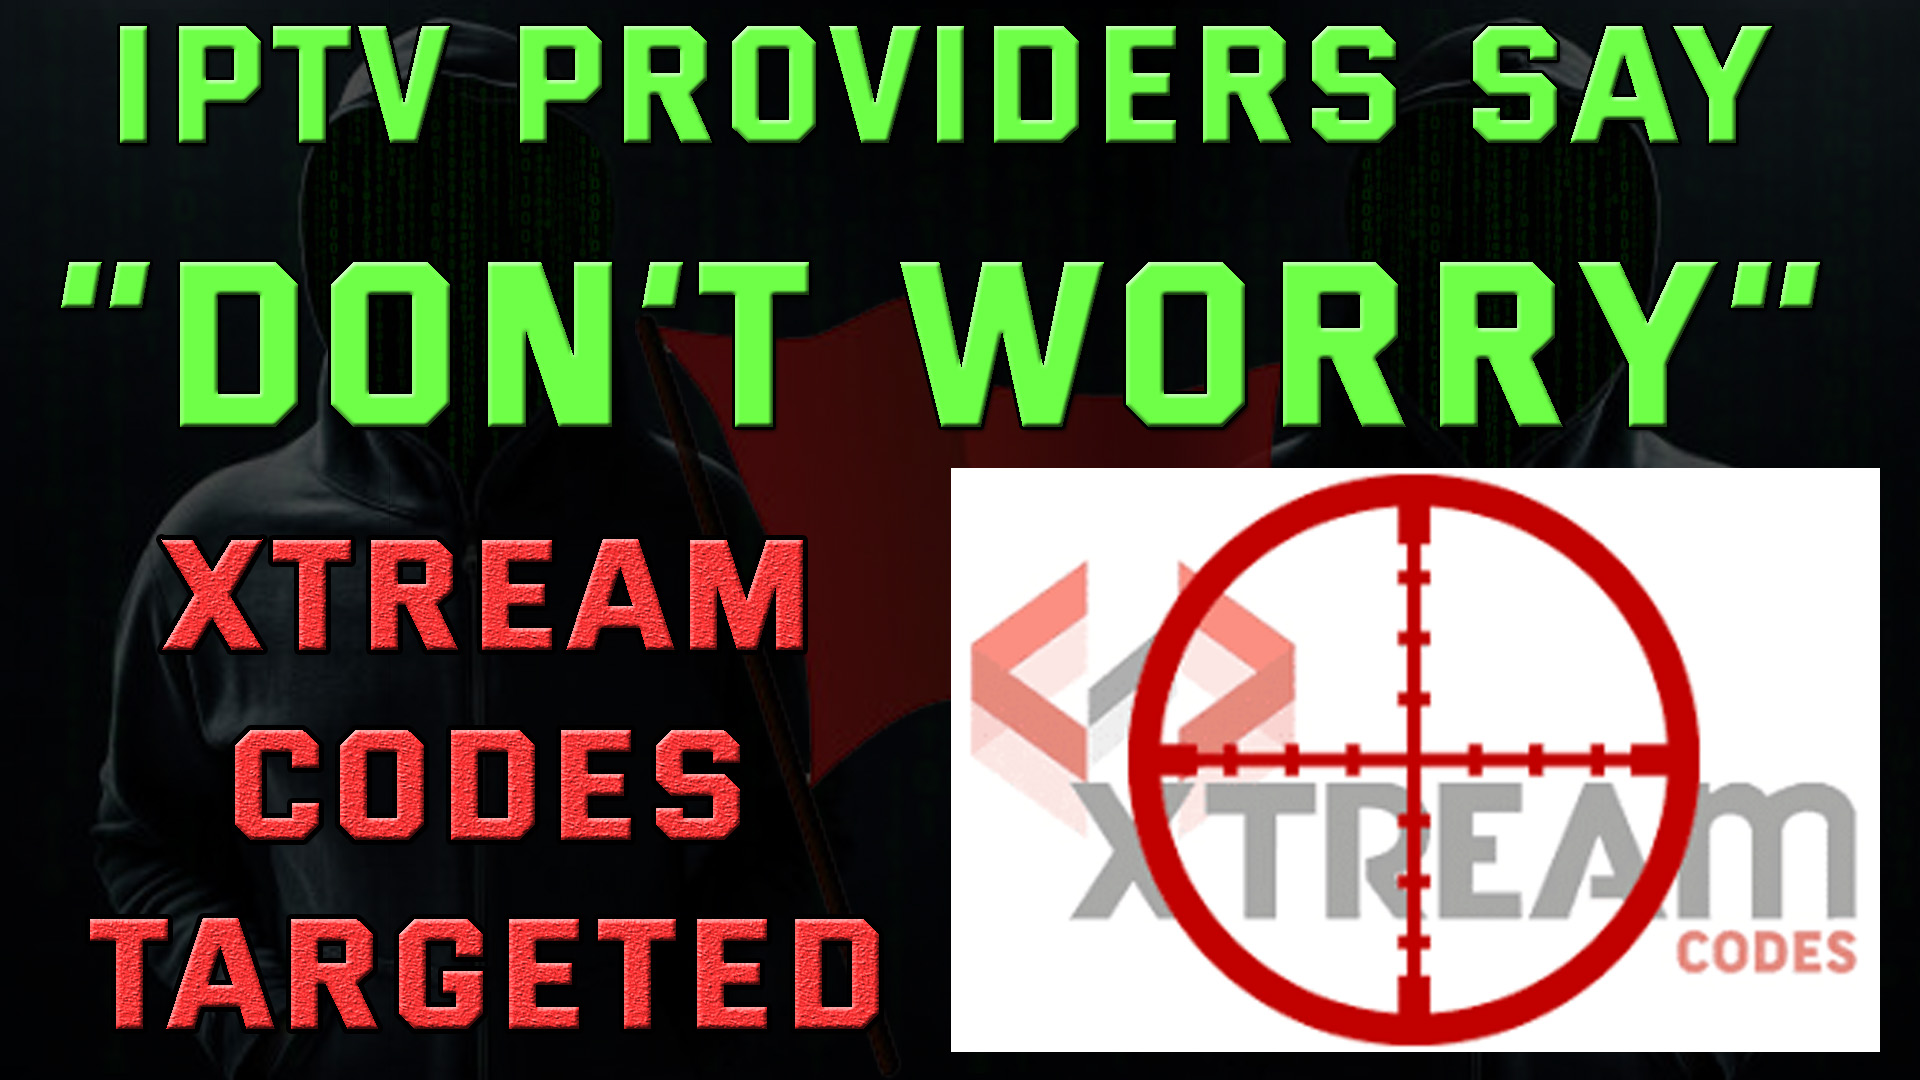 Xtream Codes Targeted, Providers say don't worry